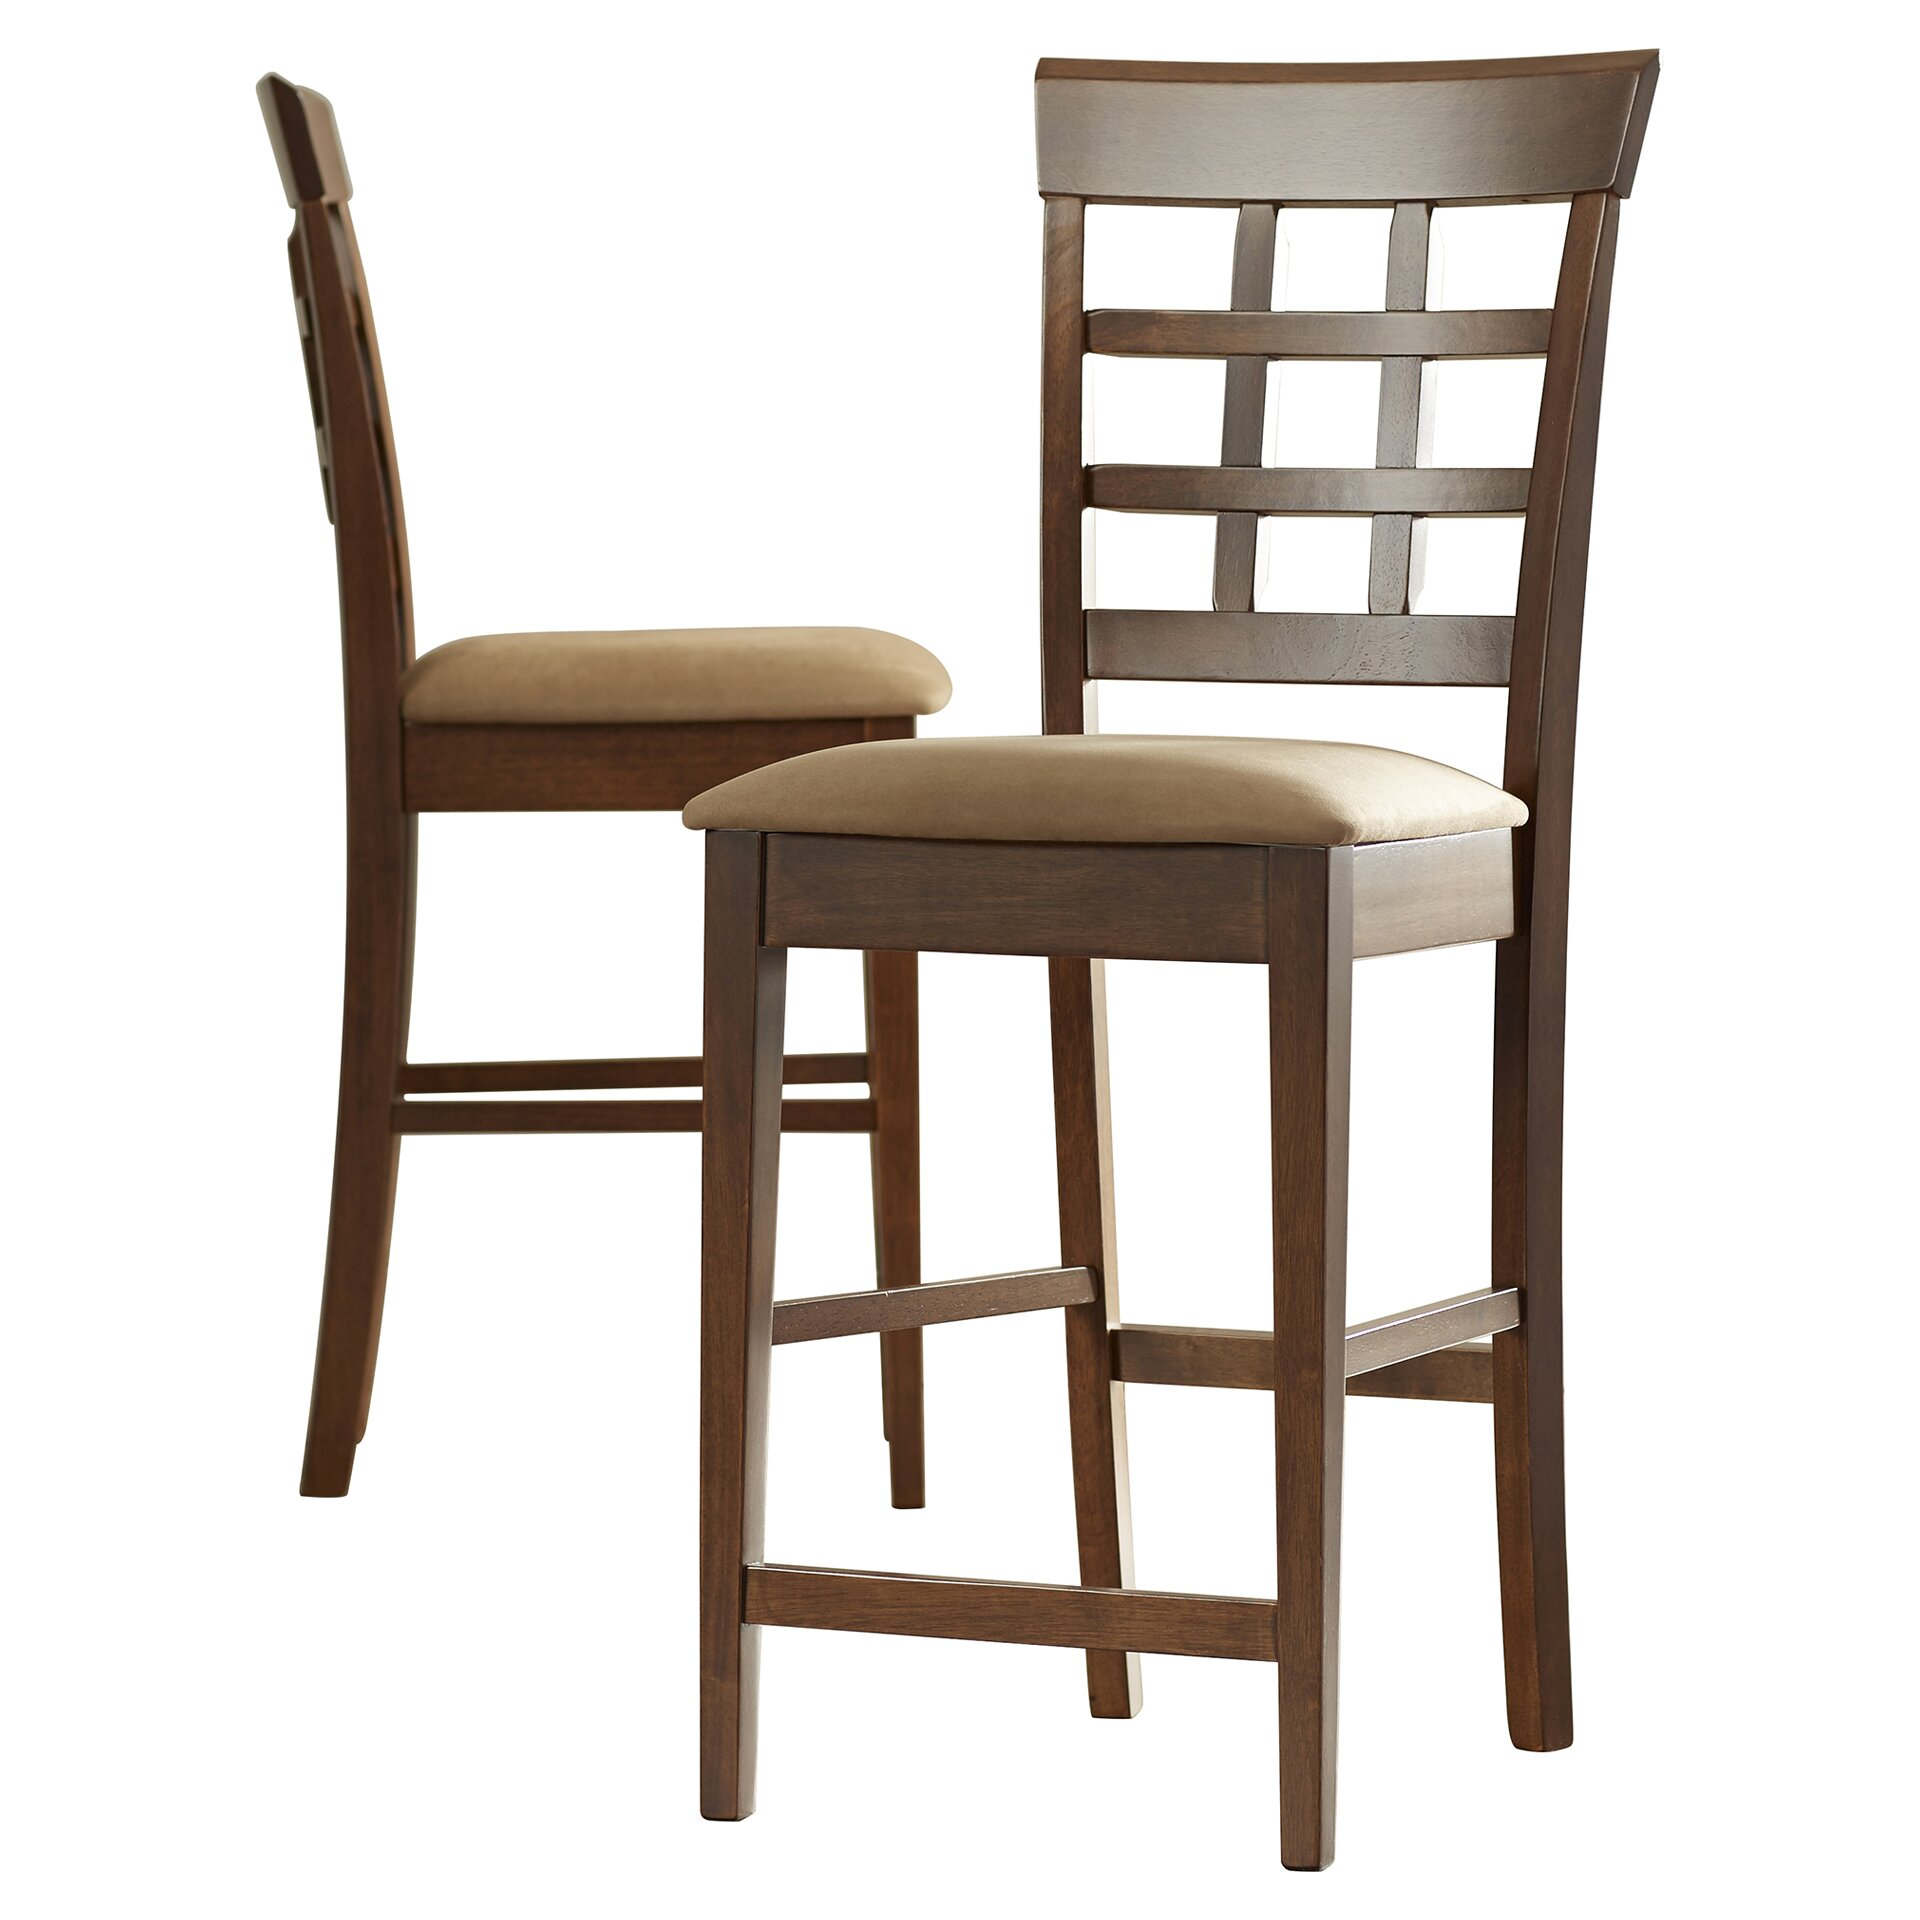 Alcott Hill Melvin 24 Quot Bar Stool With Cushion Amp Reviews